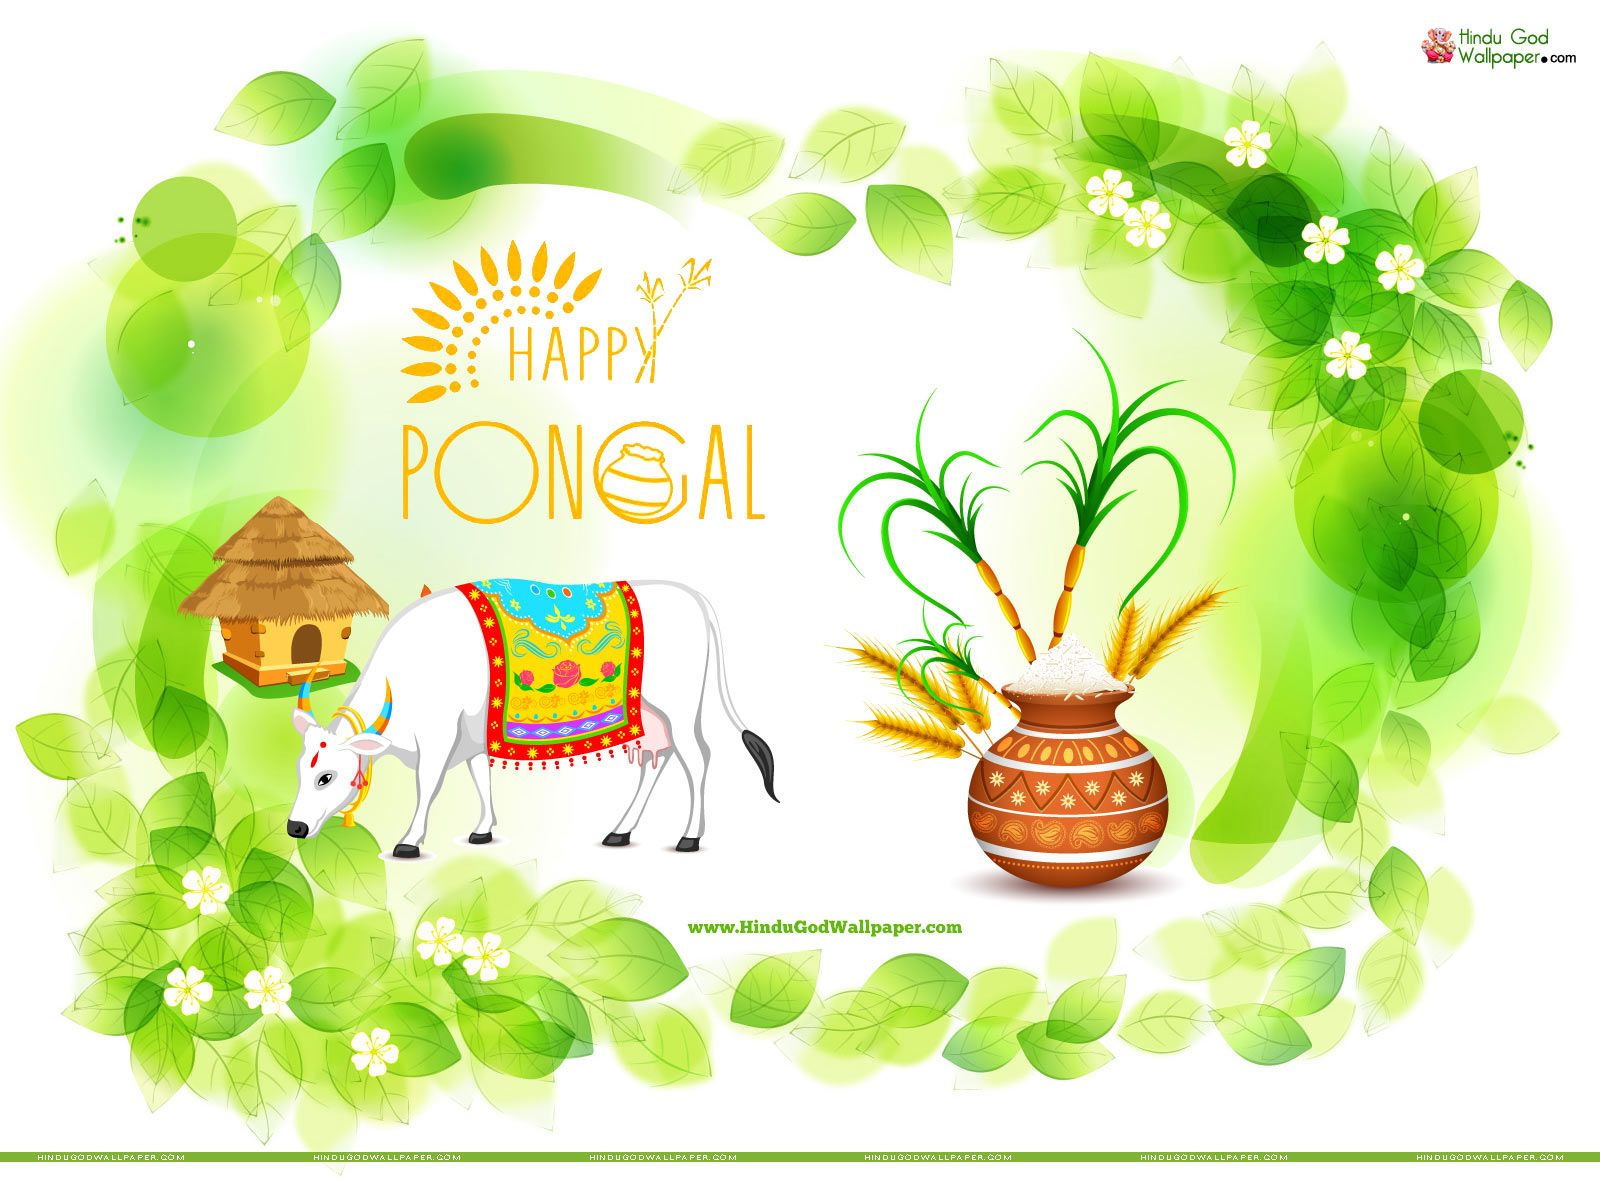 Pongal greetings wallpapers with wishes quotes pongal wallpapers pongal greetings wallpapers with wishes quotes m4hsunfo Gallery